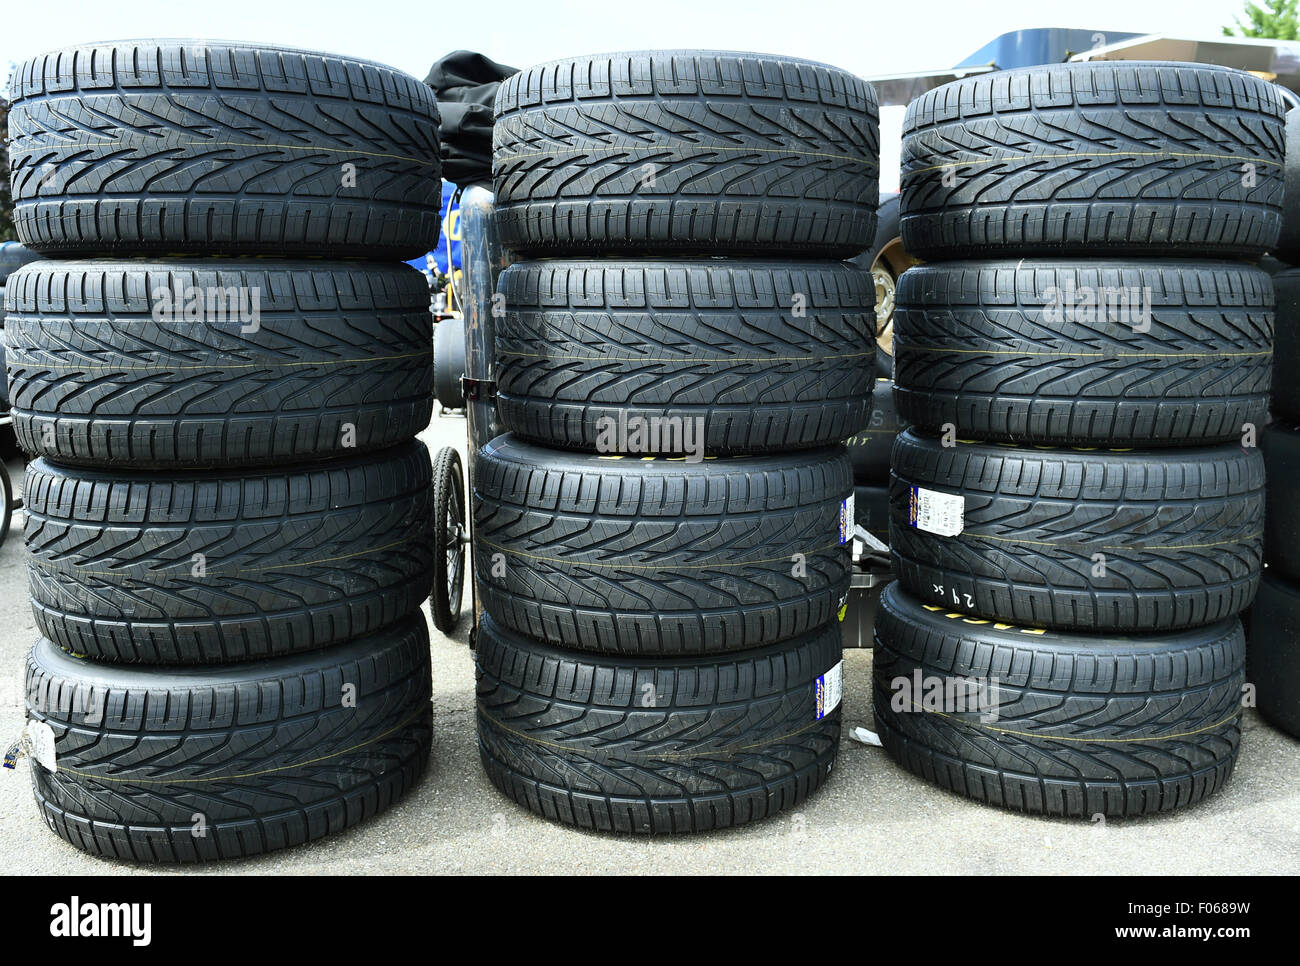 General Tires Stock Photos & General Tires Stock Images - Alamy